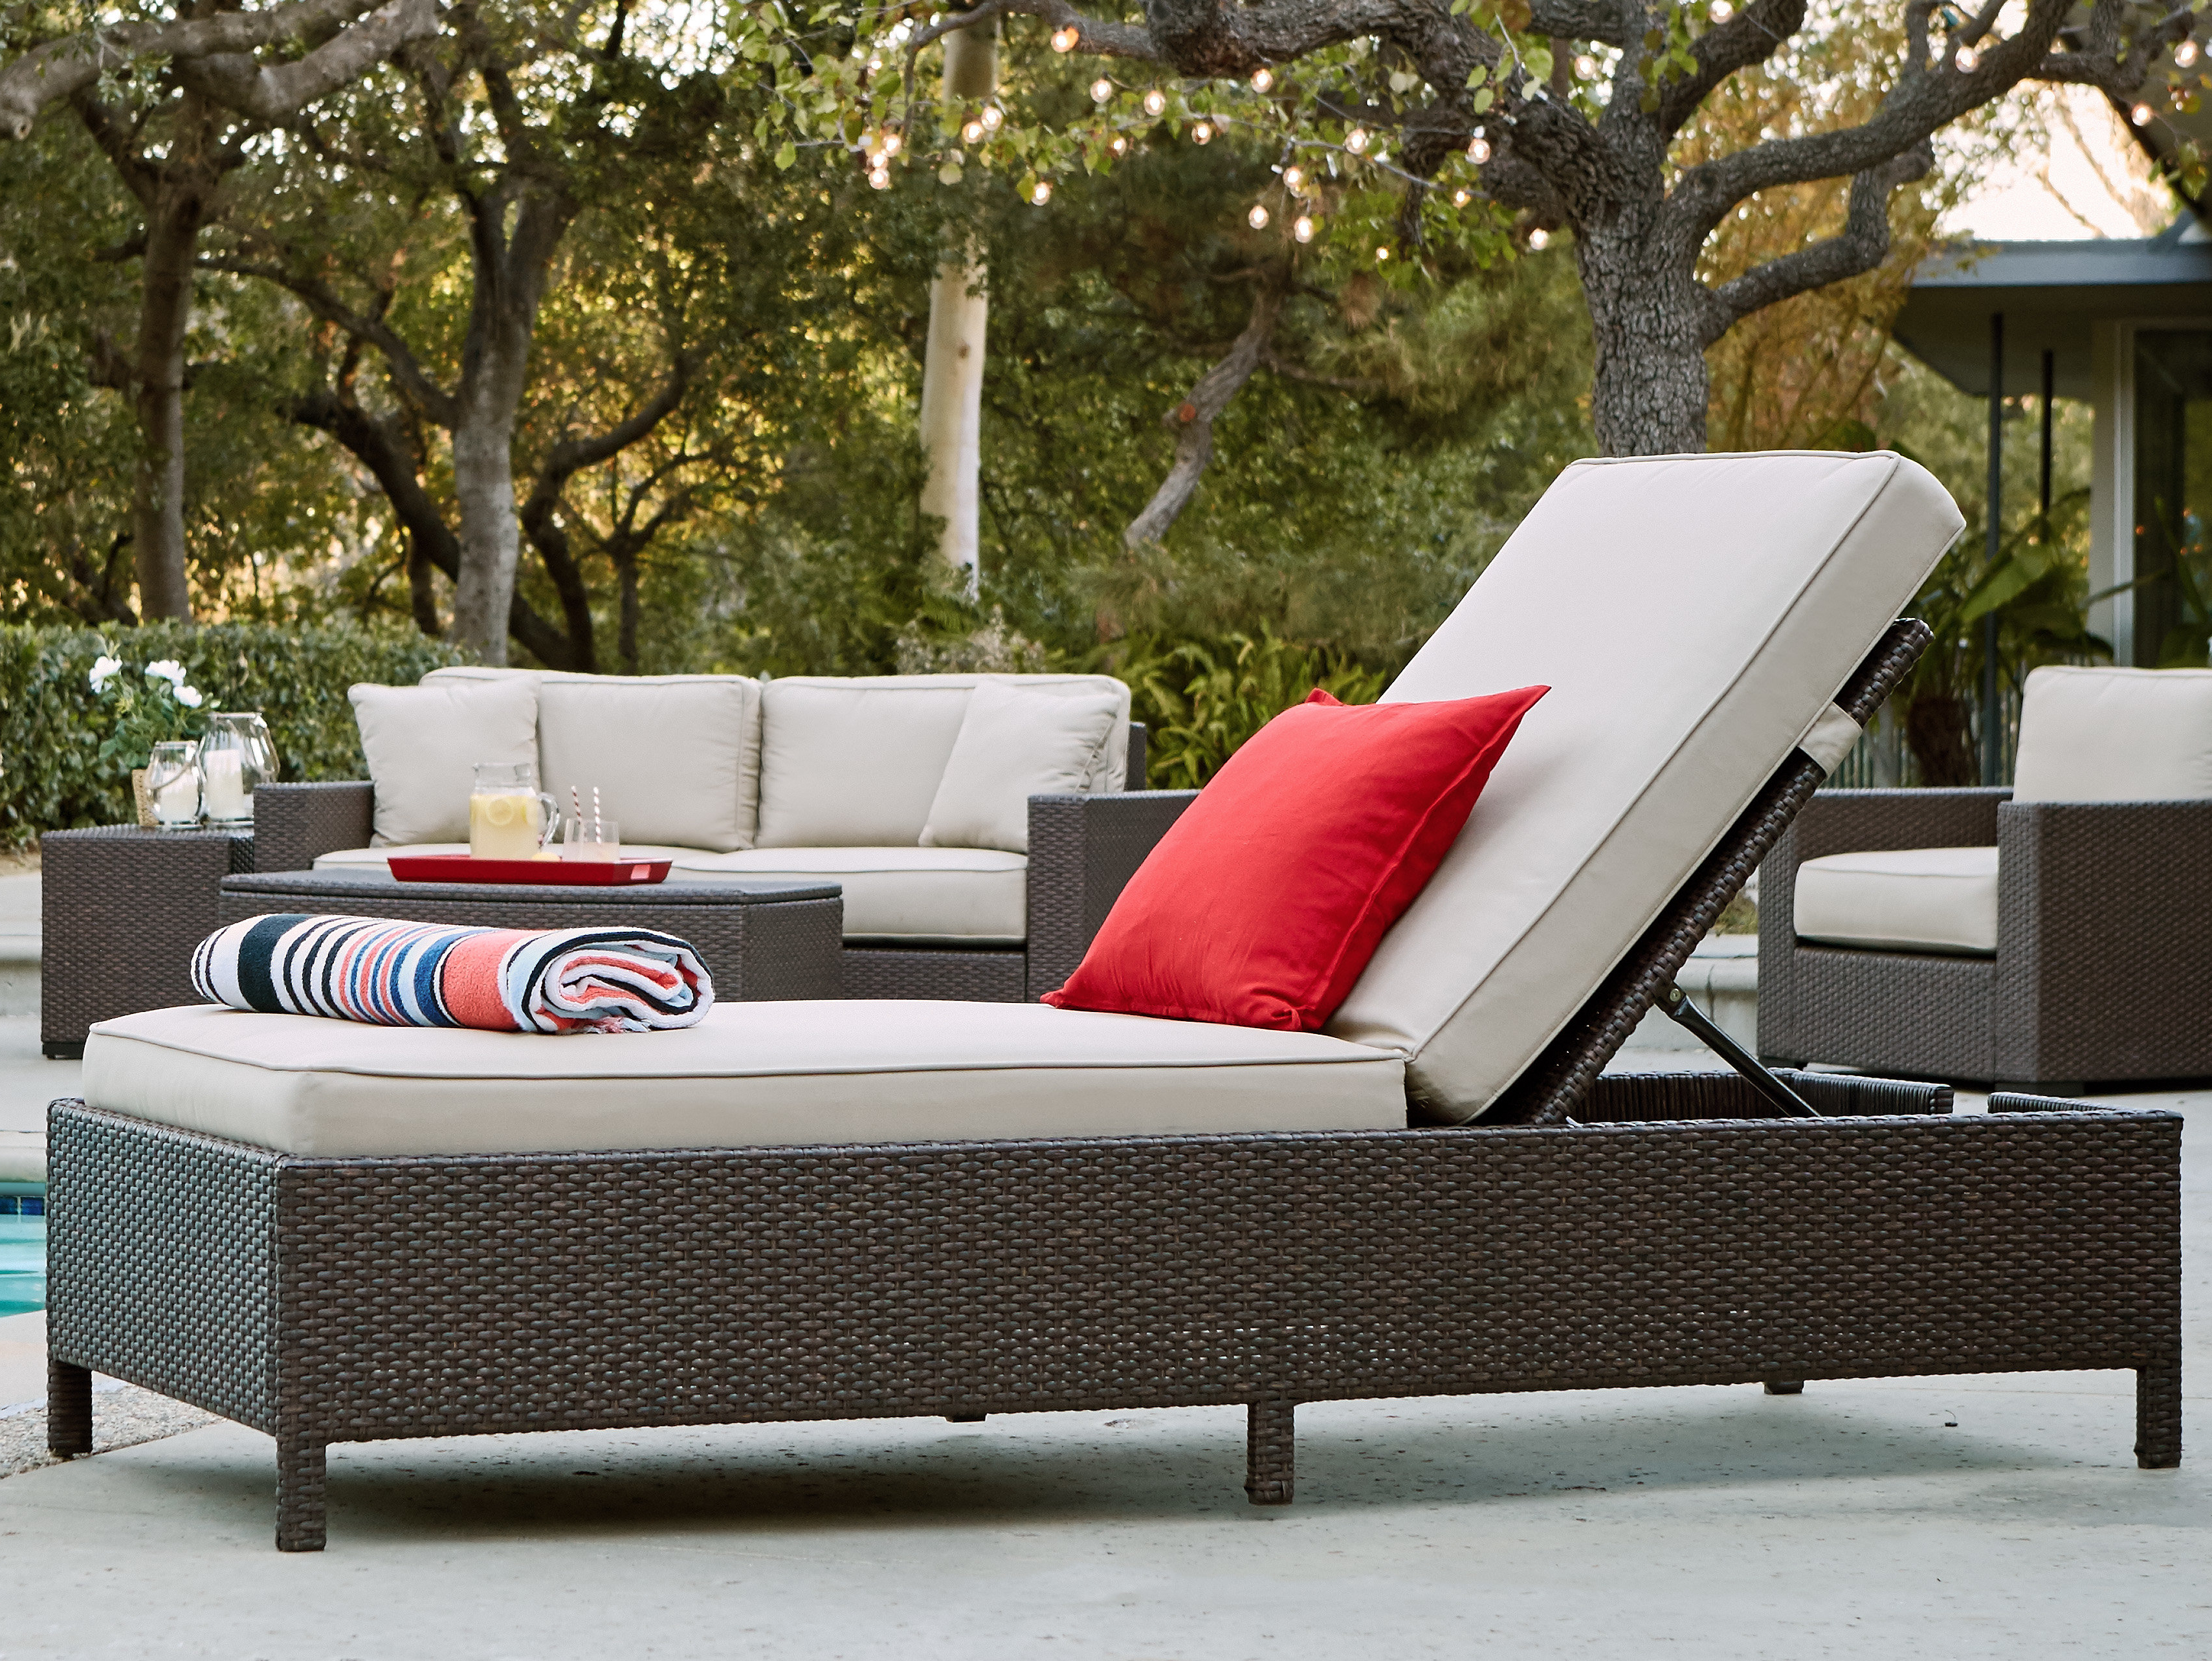 Laguna Outdoor Storage Chaise Lounge Inside Most Up To Date Laguna Outdoor Sofas With Cushions (View 11 of 20)